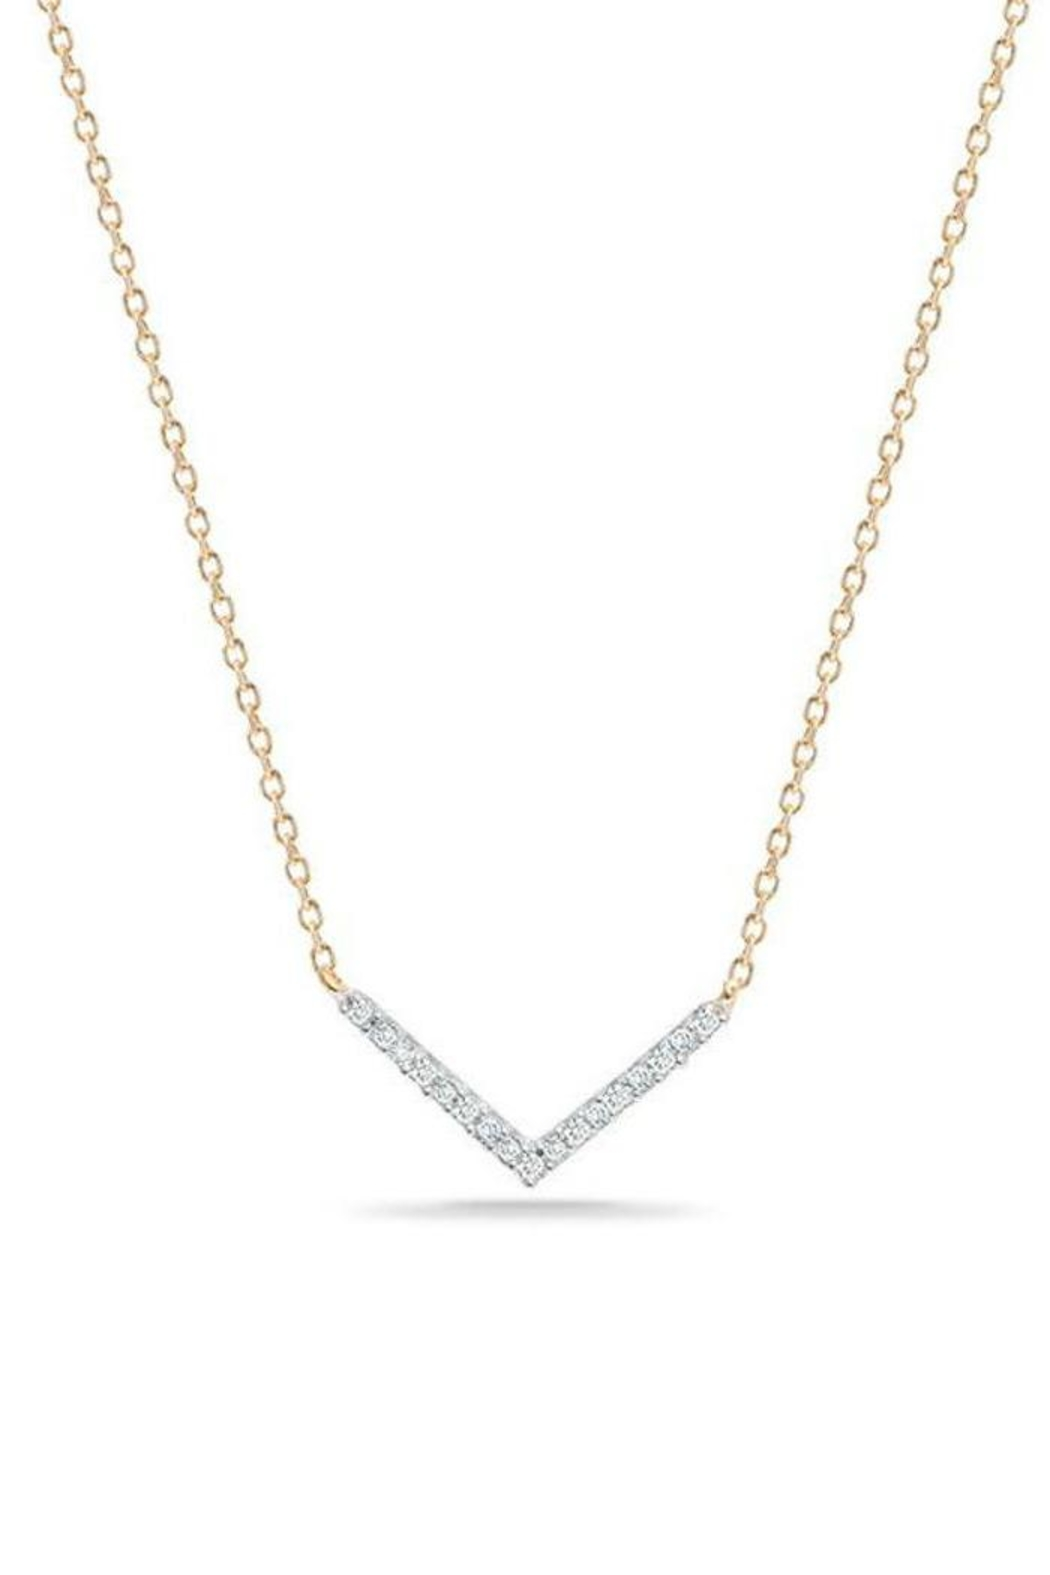 Adina Reyter Pave Bar Necklace - Front Cropped Image